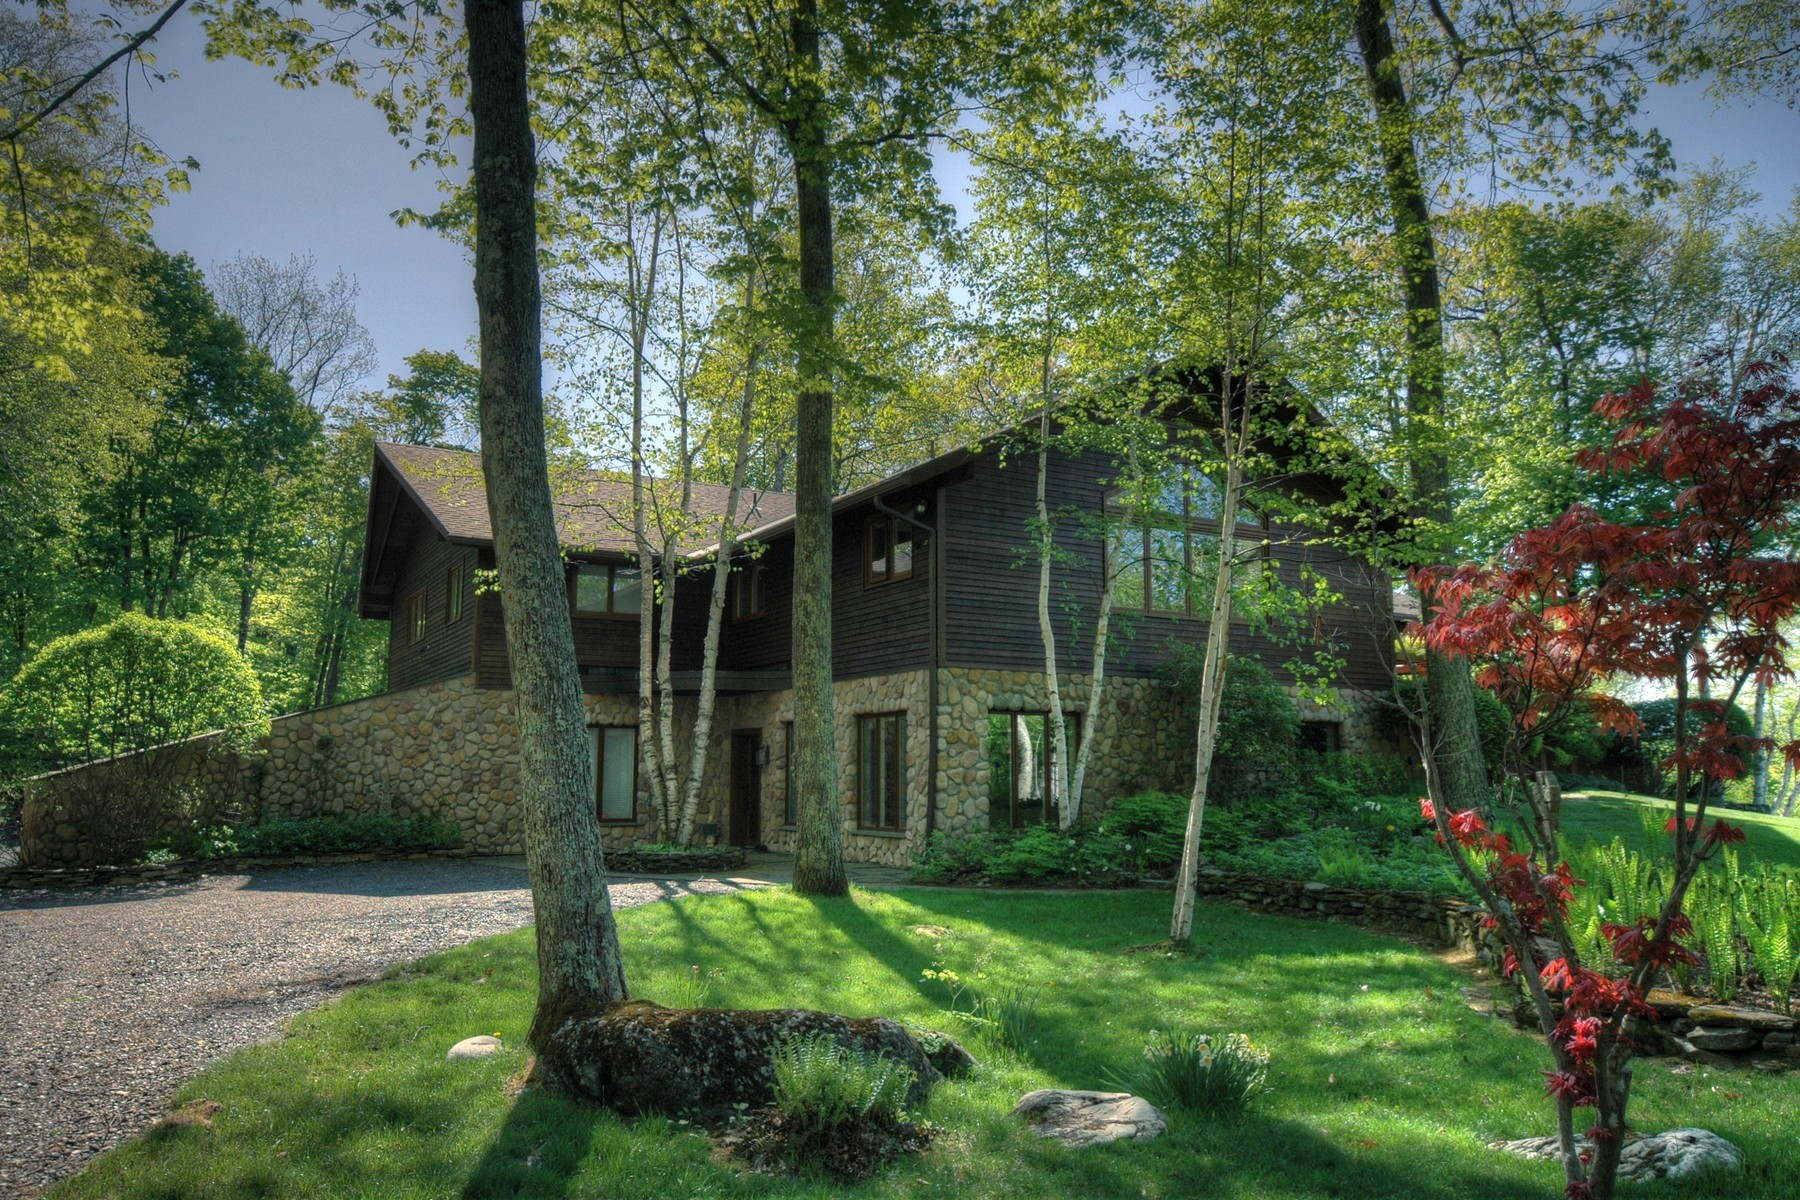 Single Family Home for Sale at 367 Windward Hill, Dorset Dorset, Vermont 05251 United States